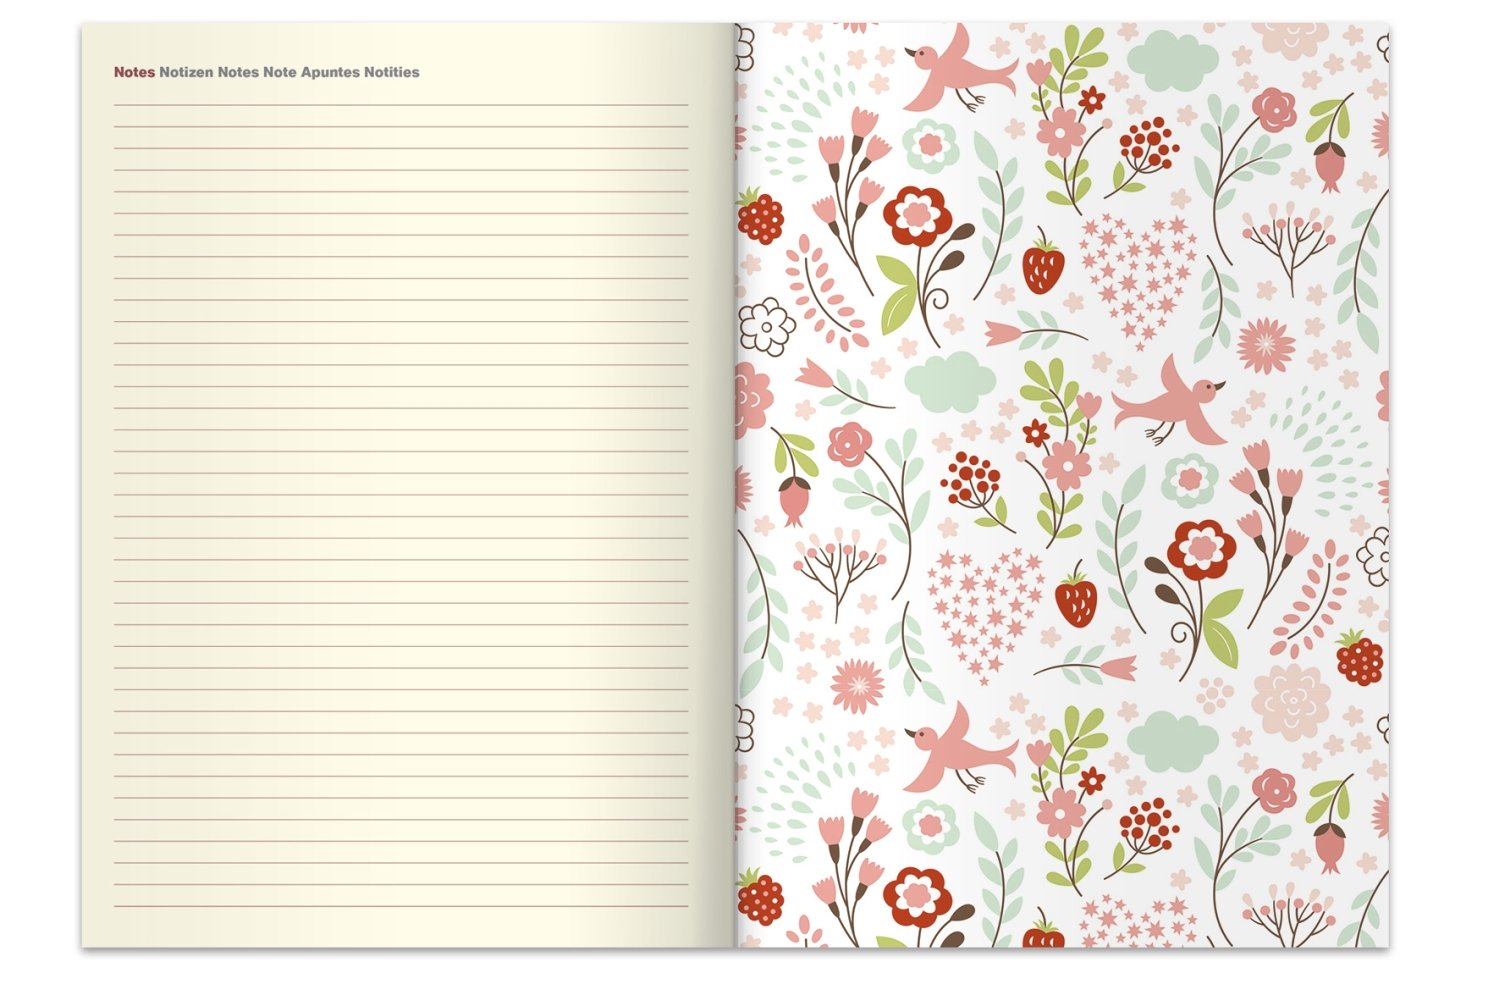 2018 Tropical Diary - teNeues Large Magneto Diary - Illustrations - 16 x 22  cm: Amazon.co.uk: teNeues Calendars & Stationery: 4002725955036: Books